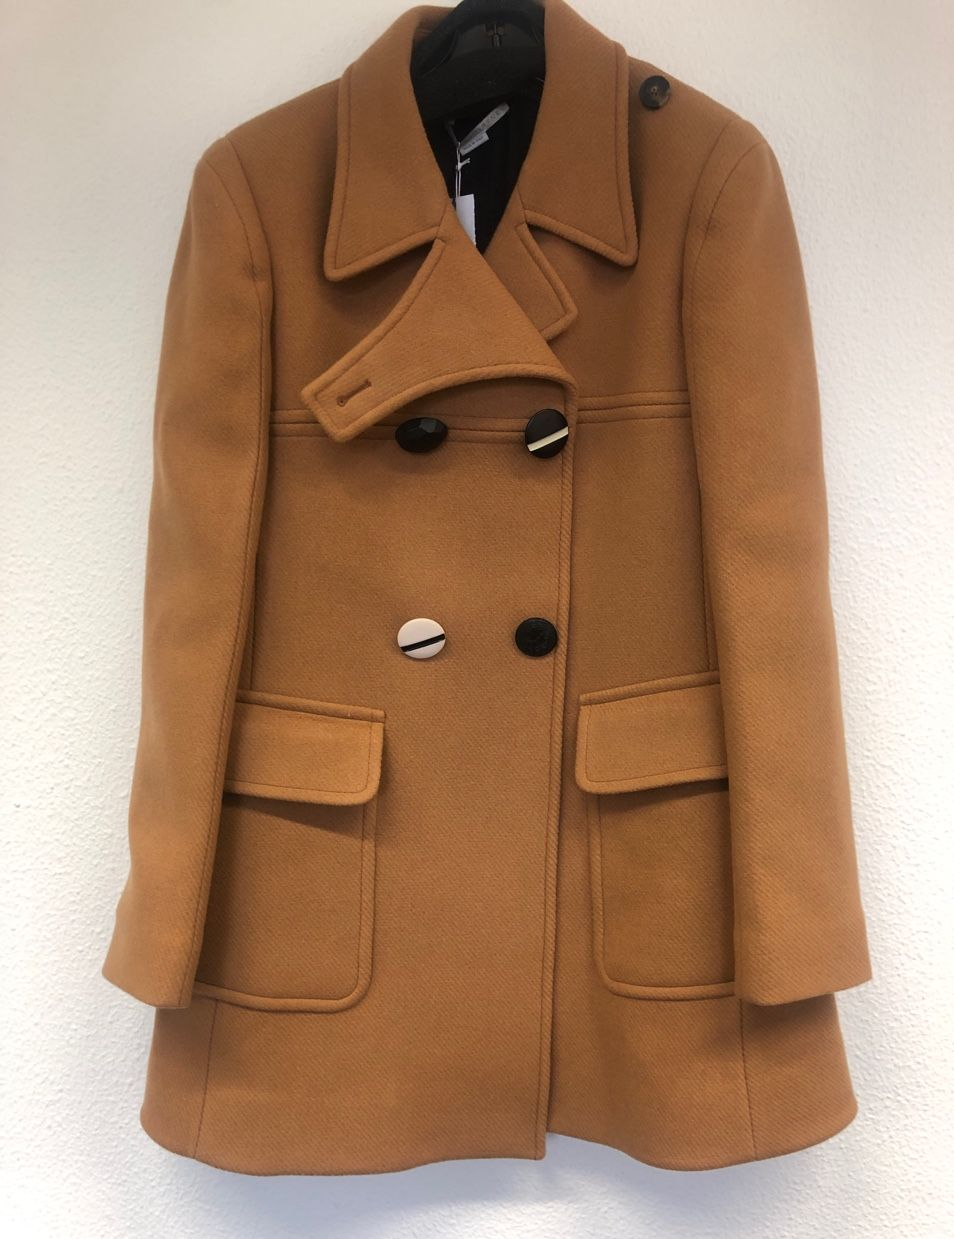 Stella McCartney Nyla double-breasted wool-felt coat Tan 1261983